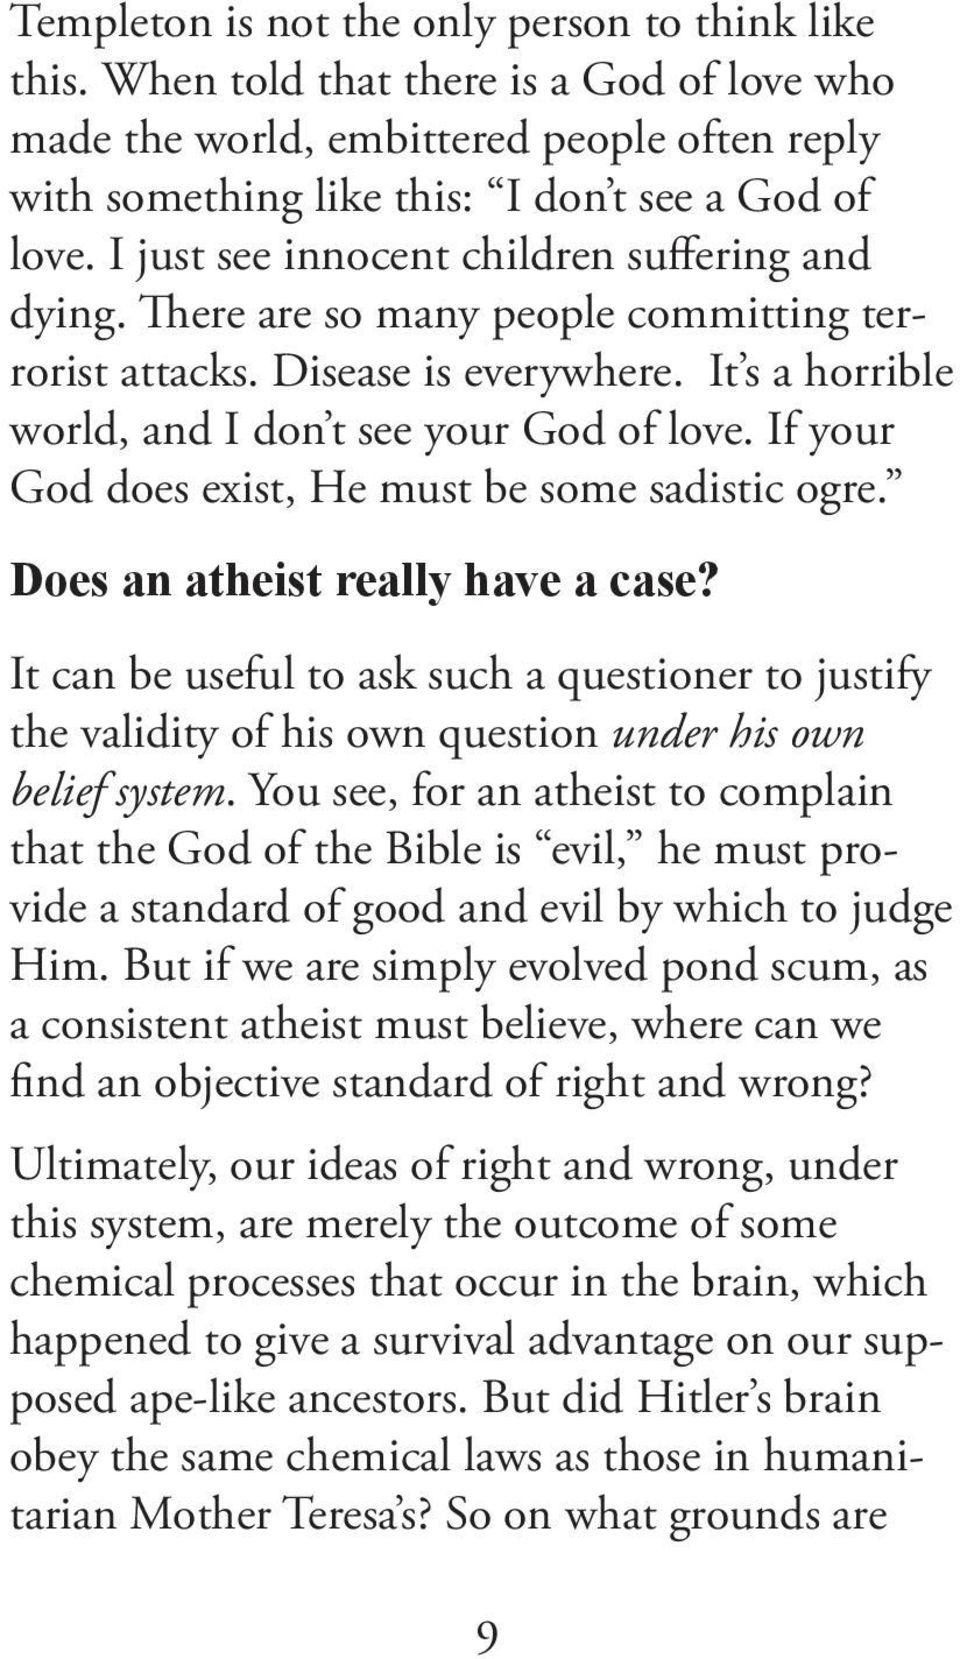 If your God does exist, He must be some sadistic ogre. Does an atheist really have a case?